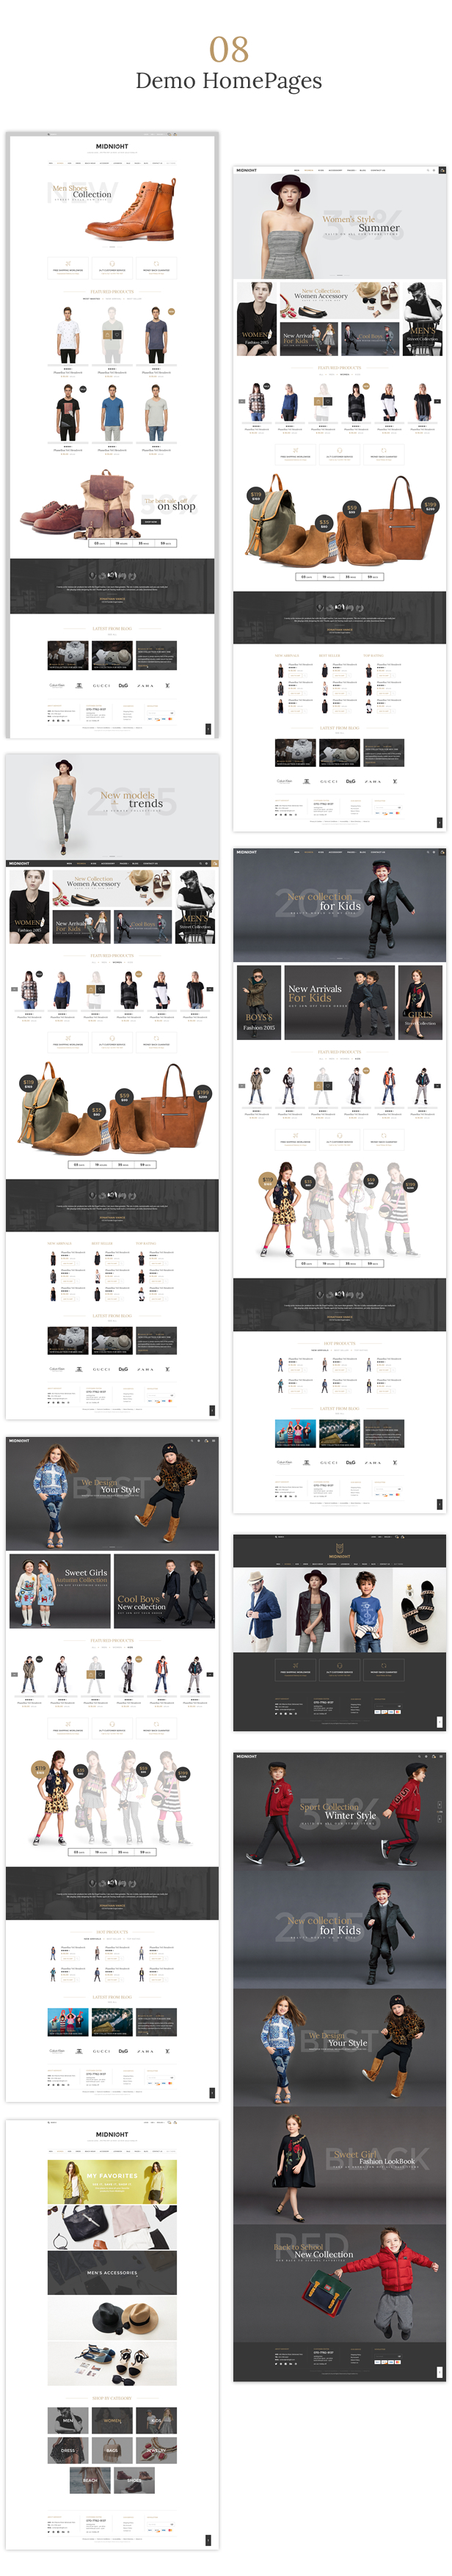 JMS MidNight - Responsive Prestashop Theme - 2